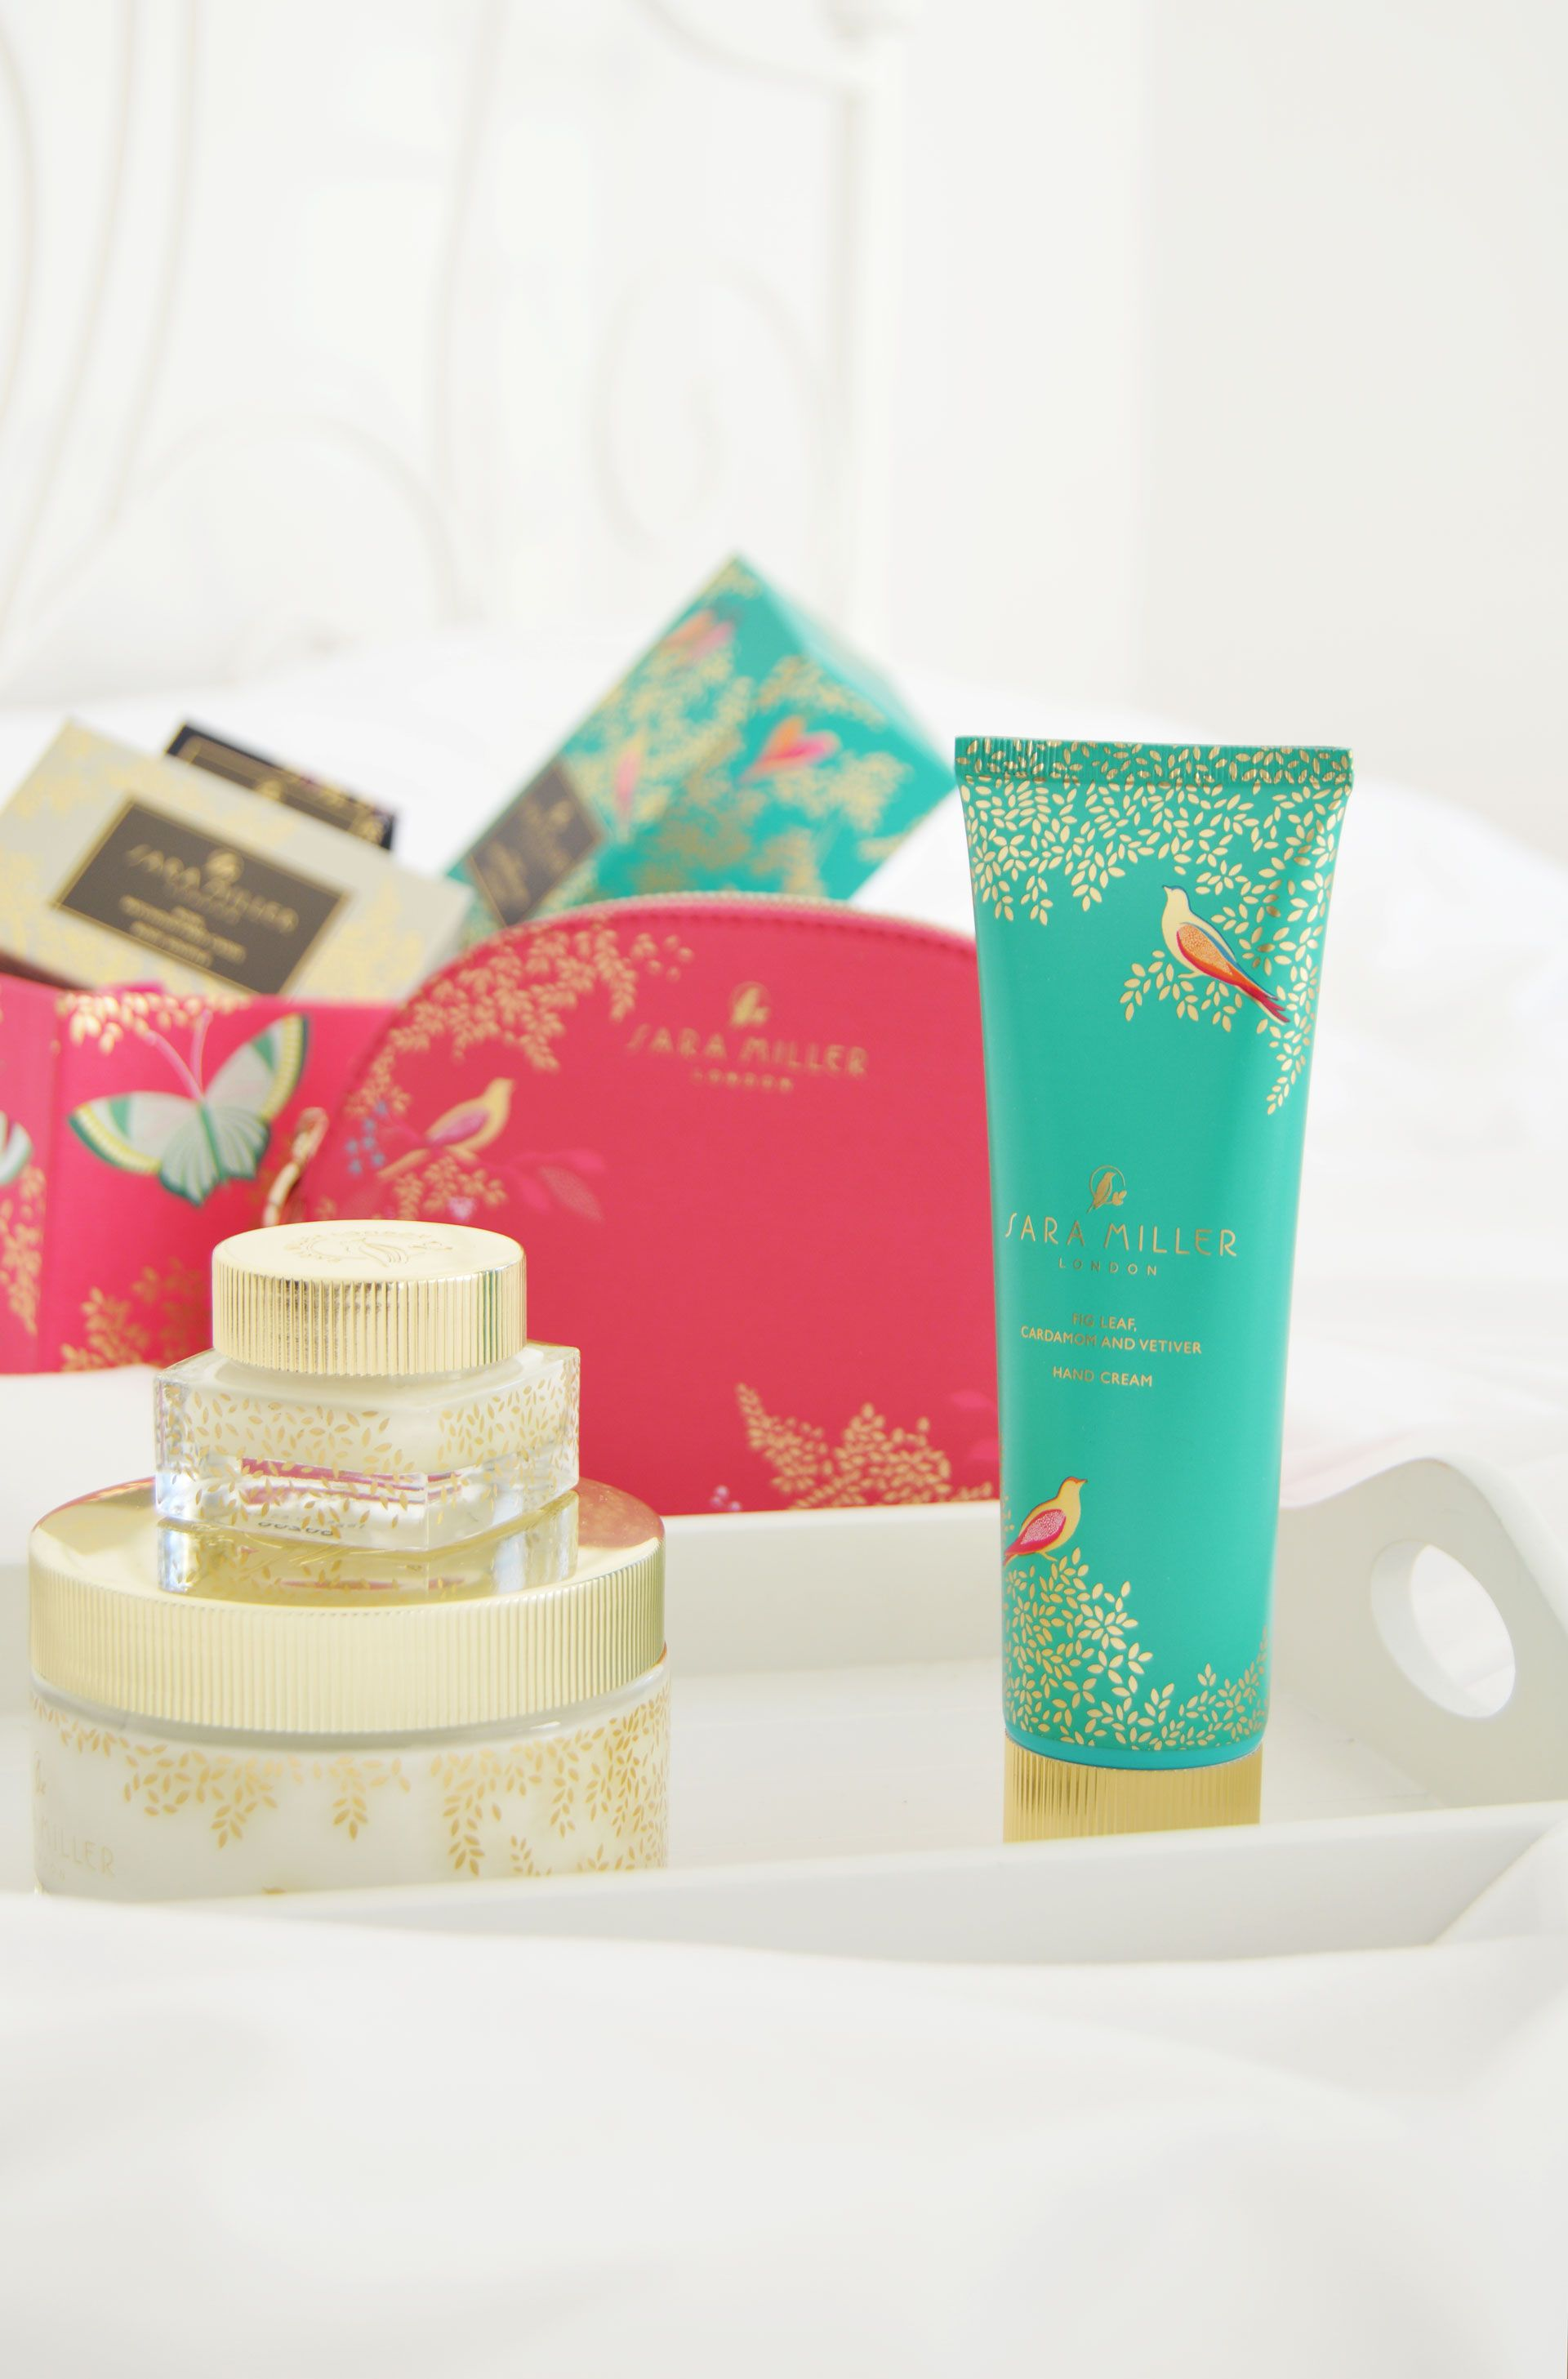 Sara Miller London Beauty Range Review | Body soufflé, hand cream, lip balm